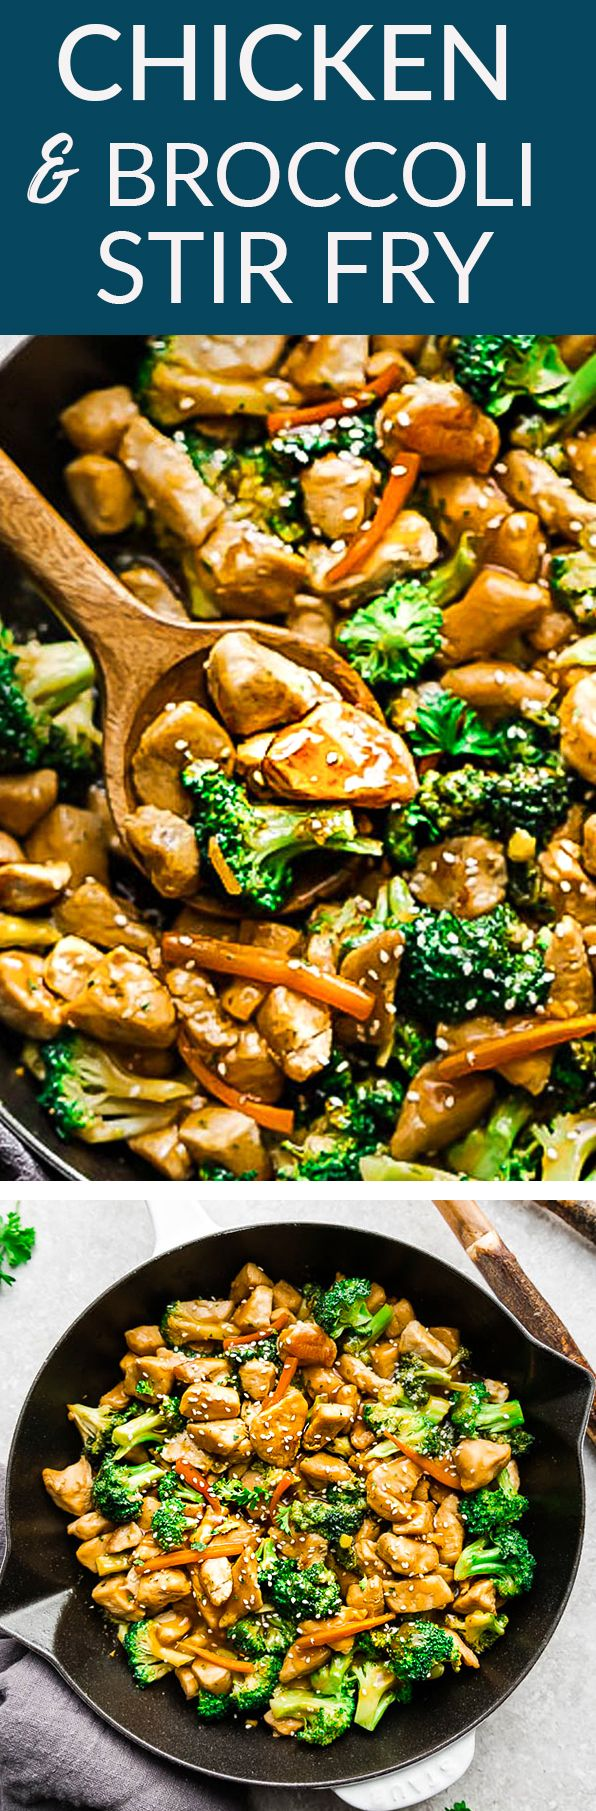 Chicken and Broccoli Stir-Fry - the perfect easy dish when that Chinese takeout restaurant craving hits! Best of all, made with juicy chicken, tender broccoli & carrots - coated with a rich and savory Asian-inspired sauce. Simple to customize & ready in under 30 minutes, versatile and great Sunday meal prep for work or school lunches! #chicken #broccoli #takeoutfakeout #chinesetakeout #recipe #paleo #keto #options #weeknight #30minutes #chinesefood